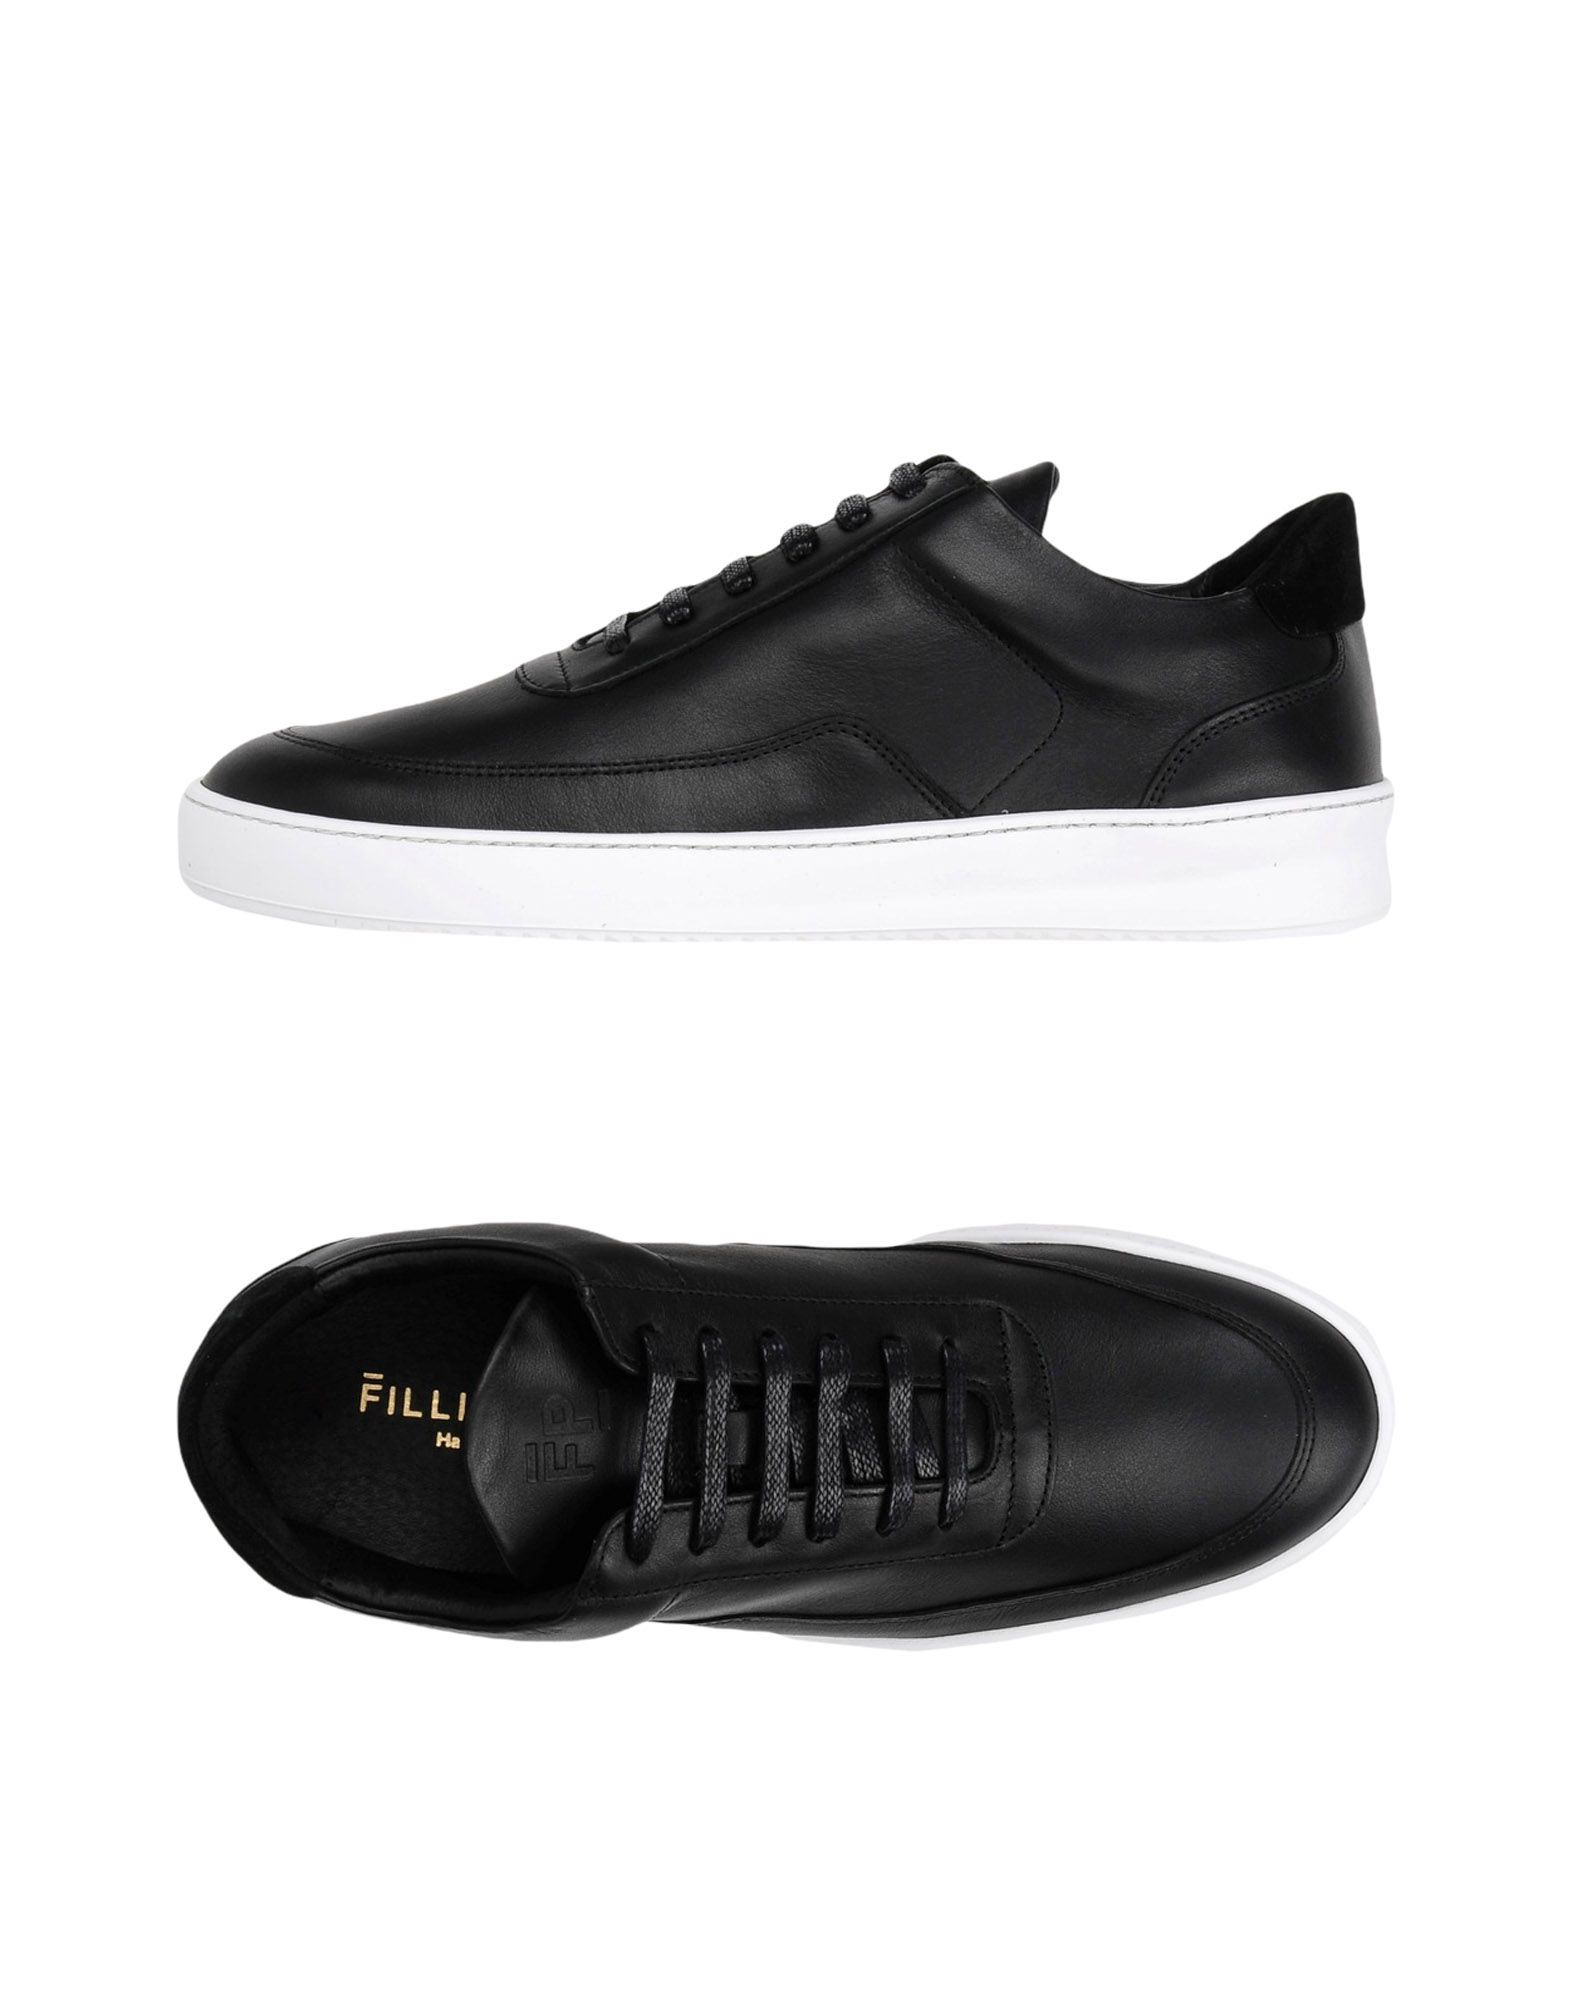 Sneakers Filling Pieces Uomo - 11364401OE